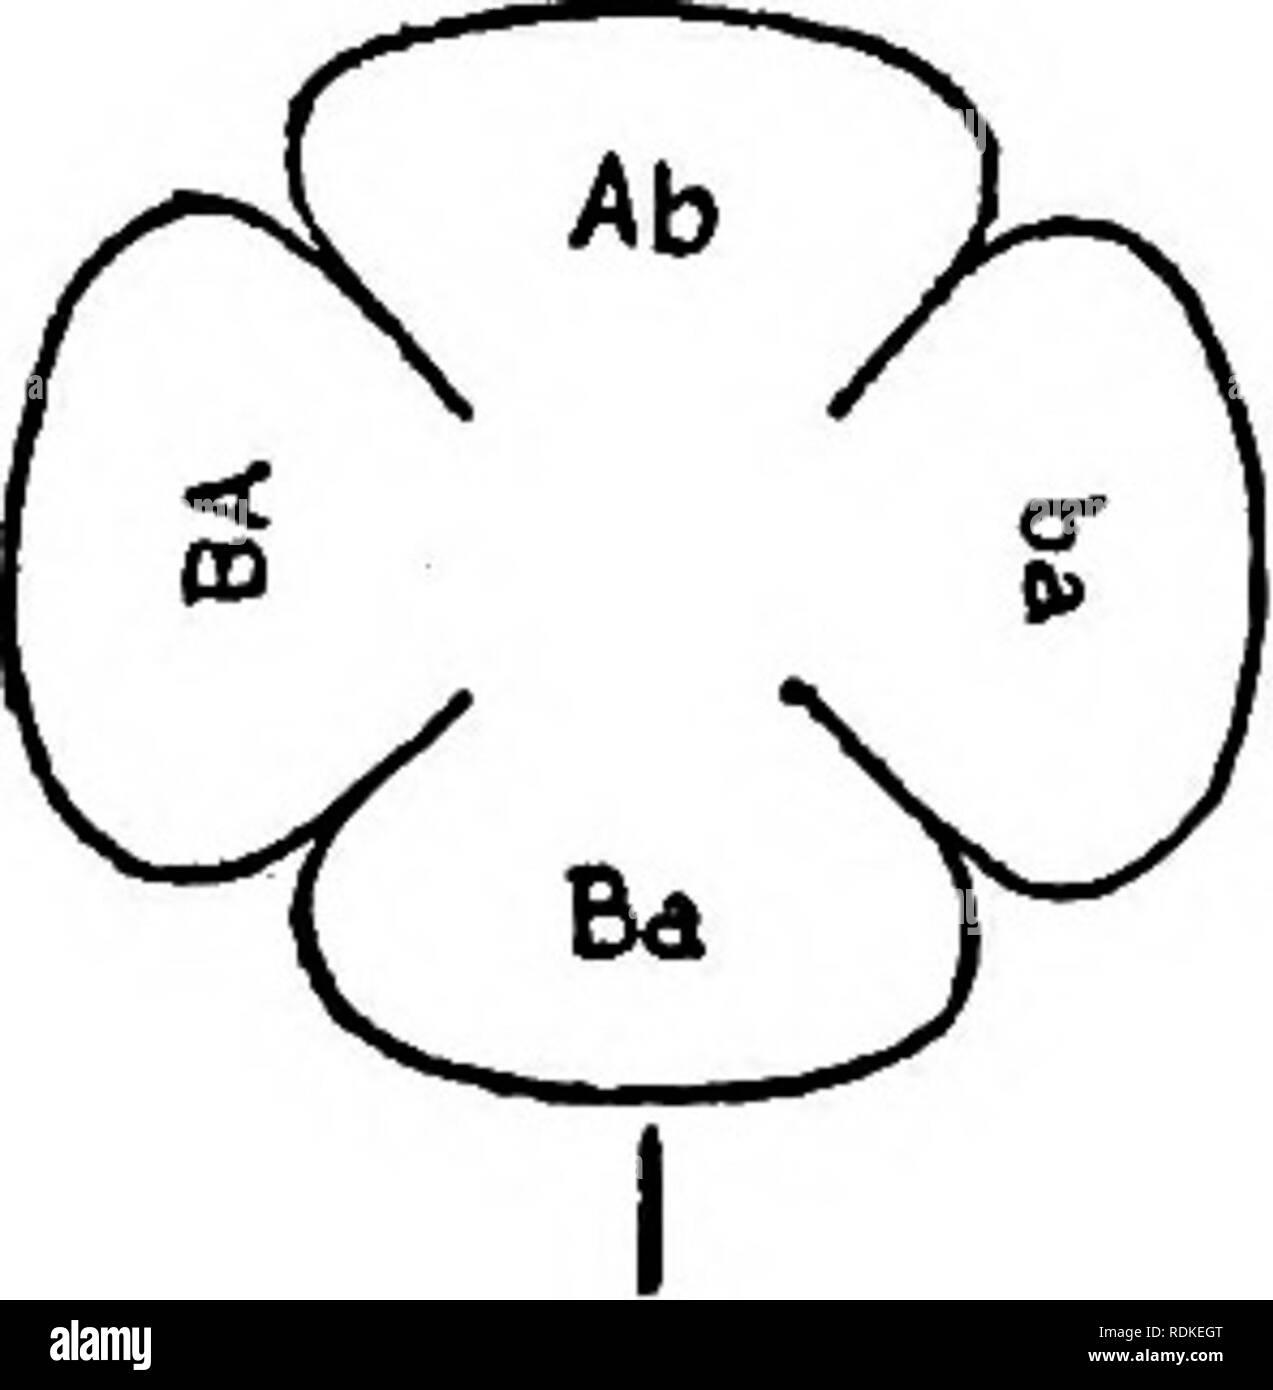 . The physical basis of heredity . Heredity. 116 PHYSICAL BASIS OF HEREDITY such groups as those given by Bateson. Even were it pos- sible to suppose that in each case a different reduplica- tion occurred {i.e., a different number of generations was passed through), still, as said above, it is not obvious that the linkage series stands in any such numerical {i.e., dichotomous) relation as the view demands. ABxab ( AB ab j ^bxaB ( Ab.aB J. n-» n-l. Please note that these images are extracted from scanned page images that may have been digitally enhanced for readability - coloration and appearan - Stock Image